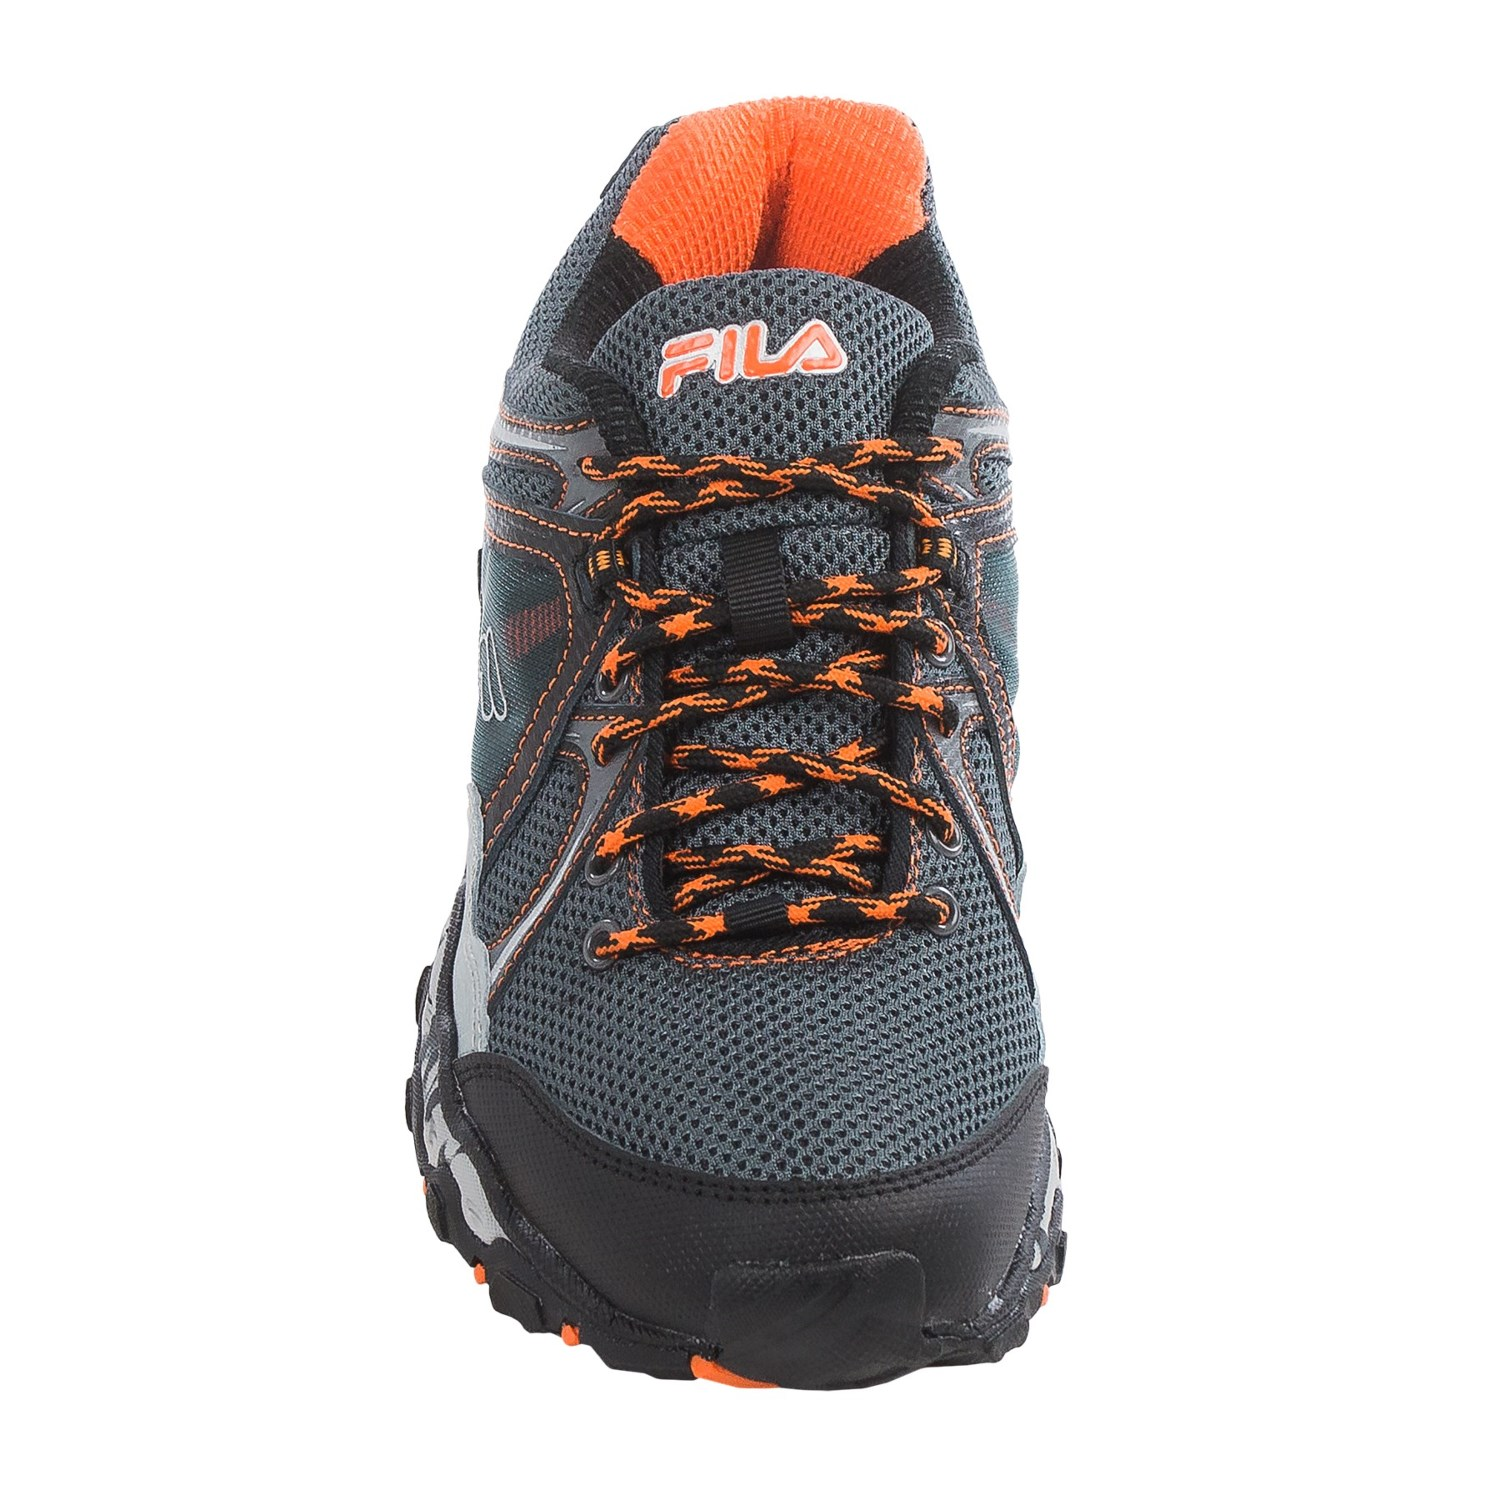 2d7e7562a9ed Fila Vitality 8 Trail Running Shoes (For Men) - Save 57%